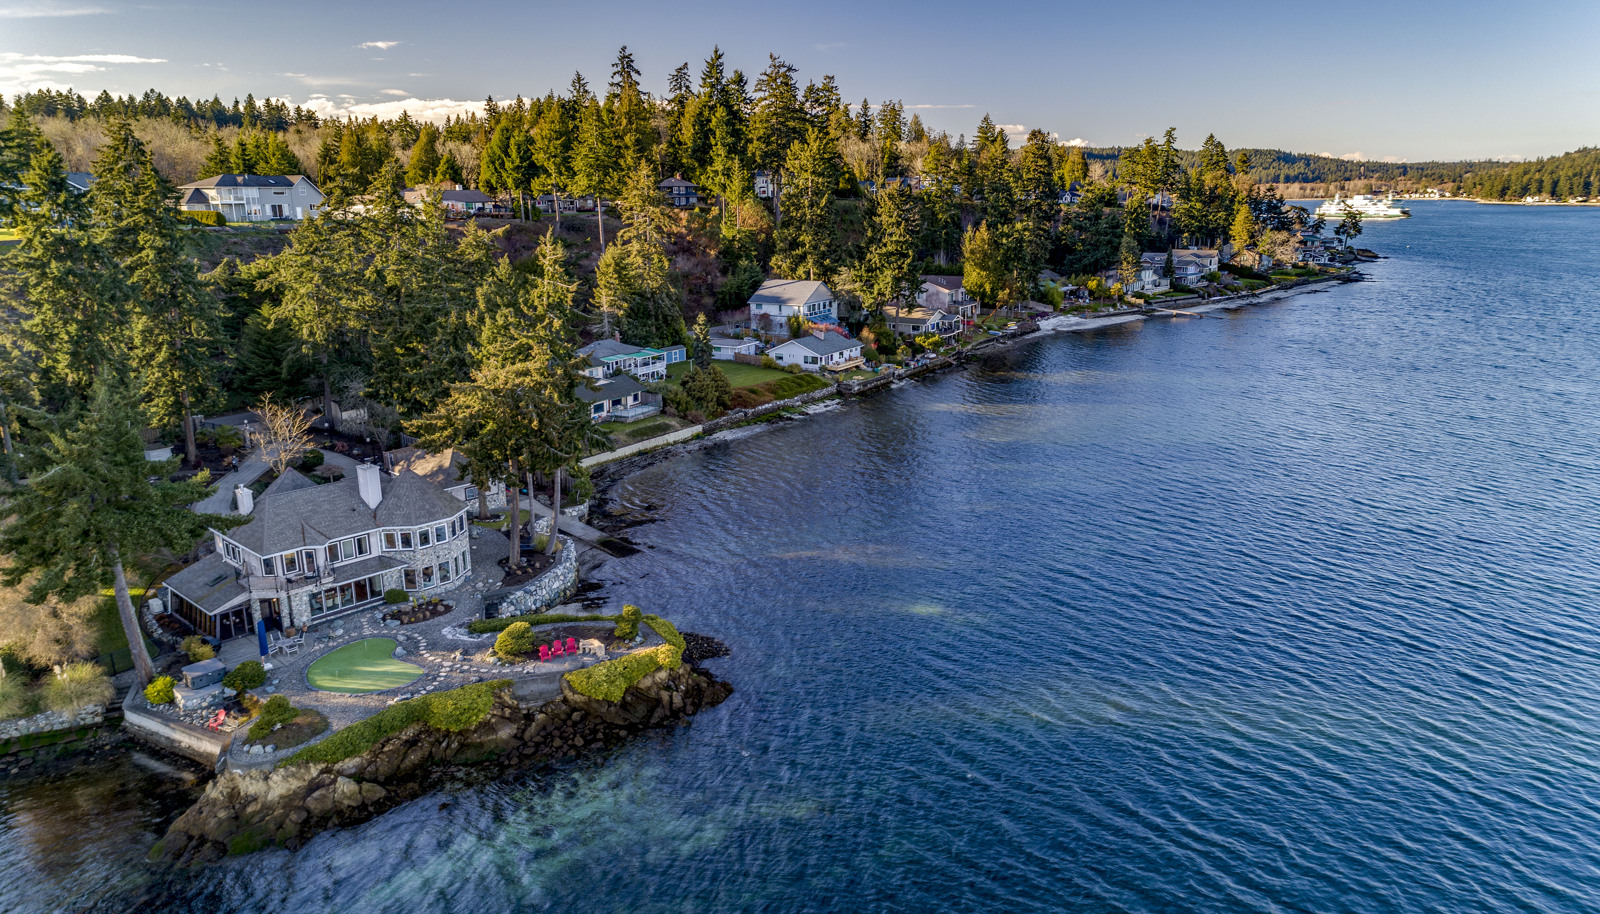 You have likely never seen a waterfront property quite like this! Now there is a direct ferry service to Downtown Seattle from S